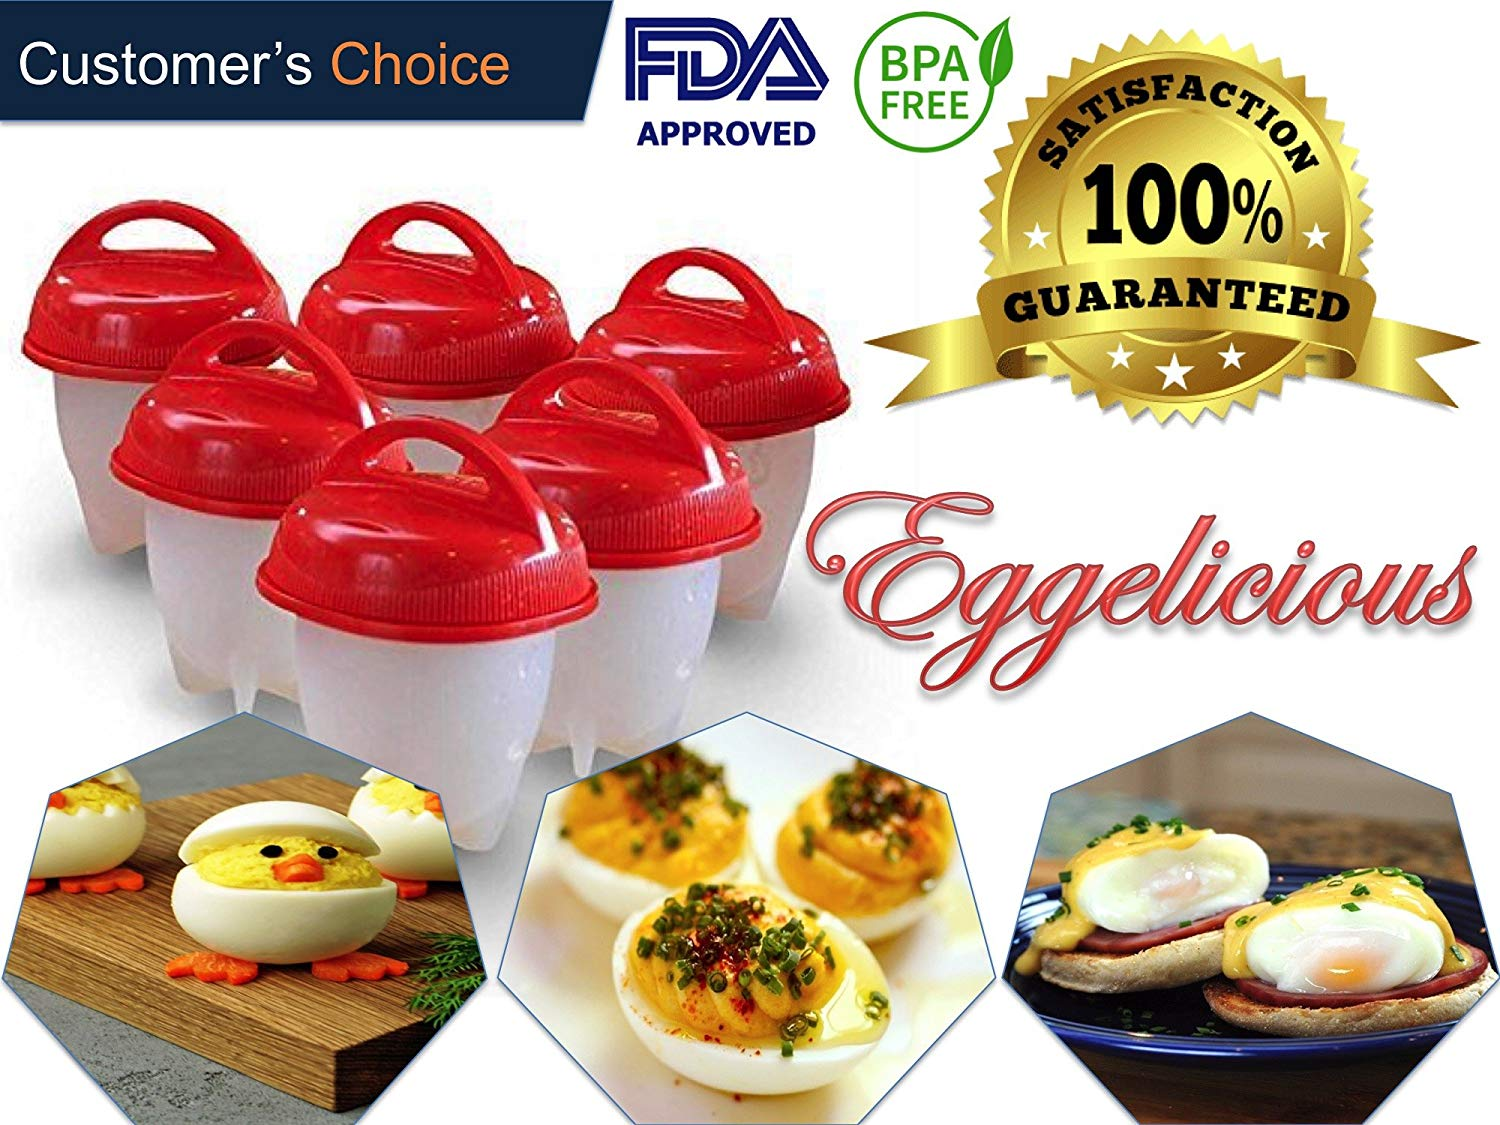 Eggelicious - The Original No Shell Egg Cooker and Boiler, Silicone Egg Cooking Molds for Hard and Soft Boiled Eggs without Shell. FDA Approved Food Grade Silicone, BPA Free (6 Piece Combo Pack - Red)